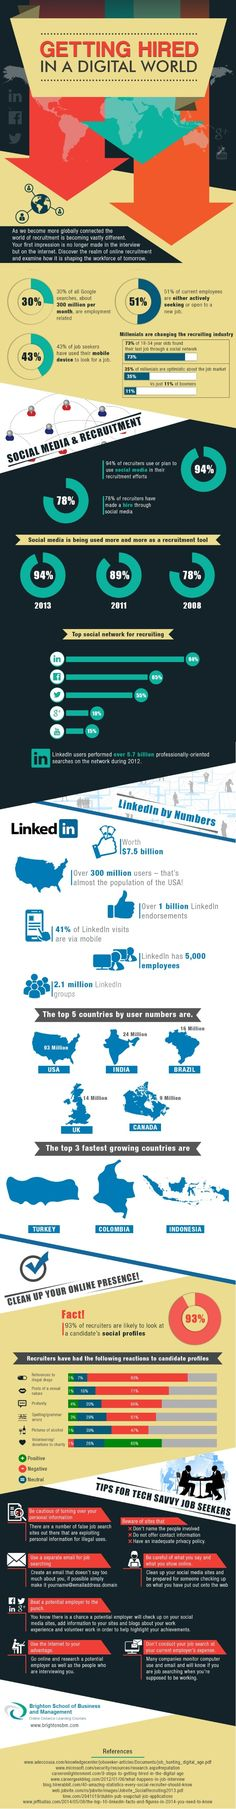 Getting Hired in the Digital World #infographic